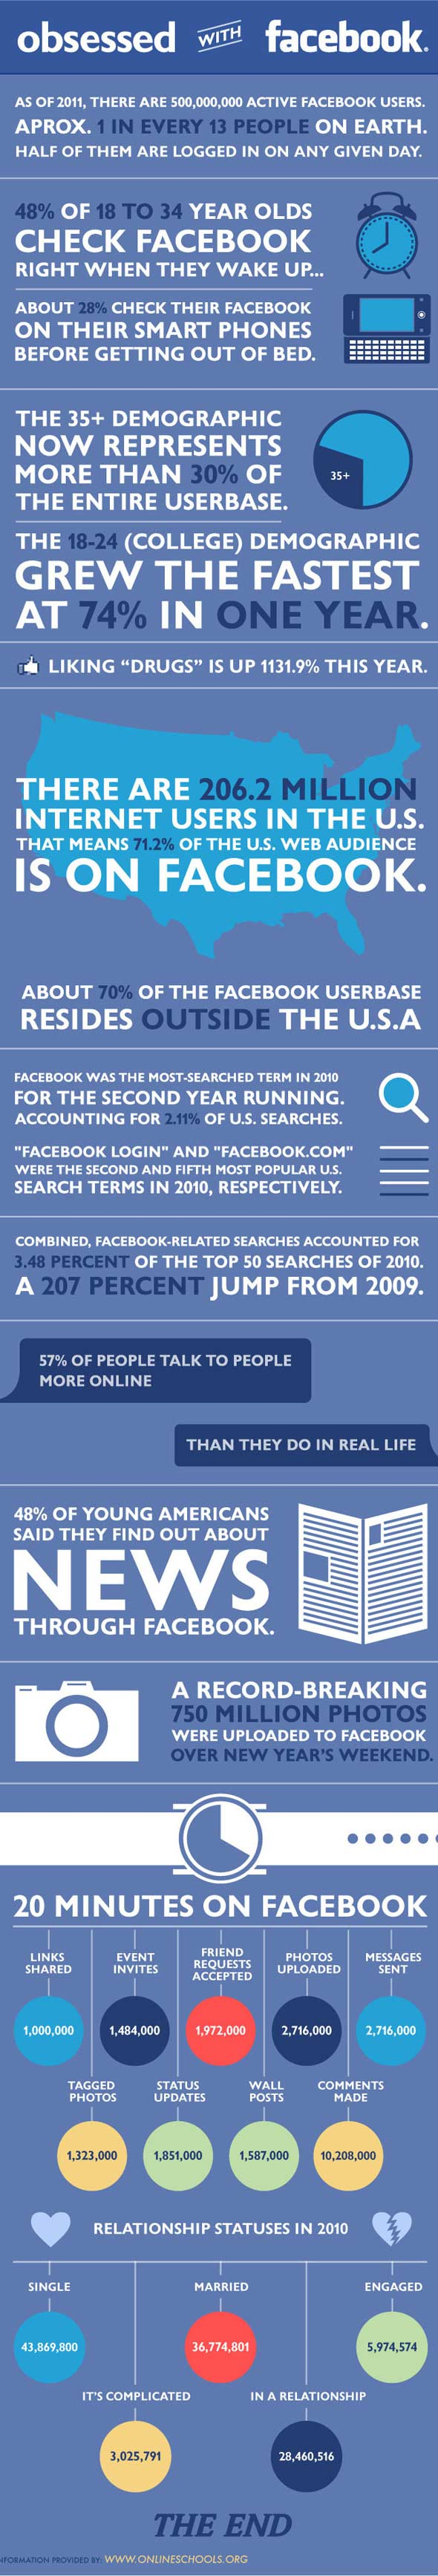 Facebook: used by 1 in 13 of the world's population [infographic]